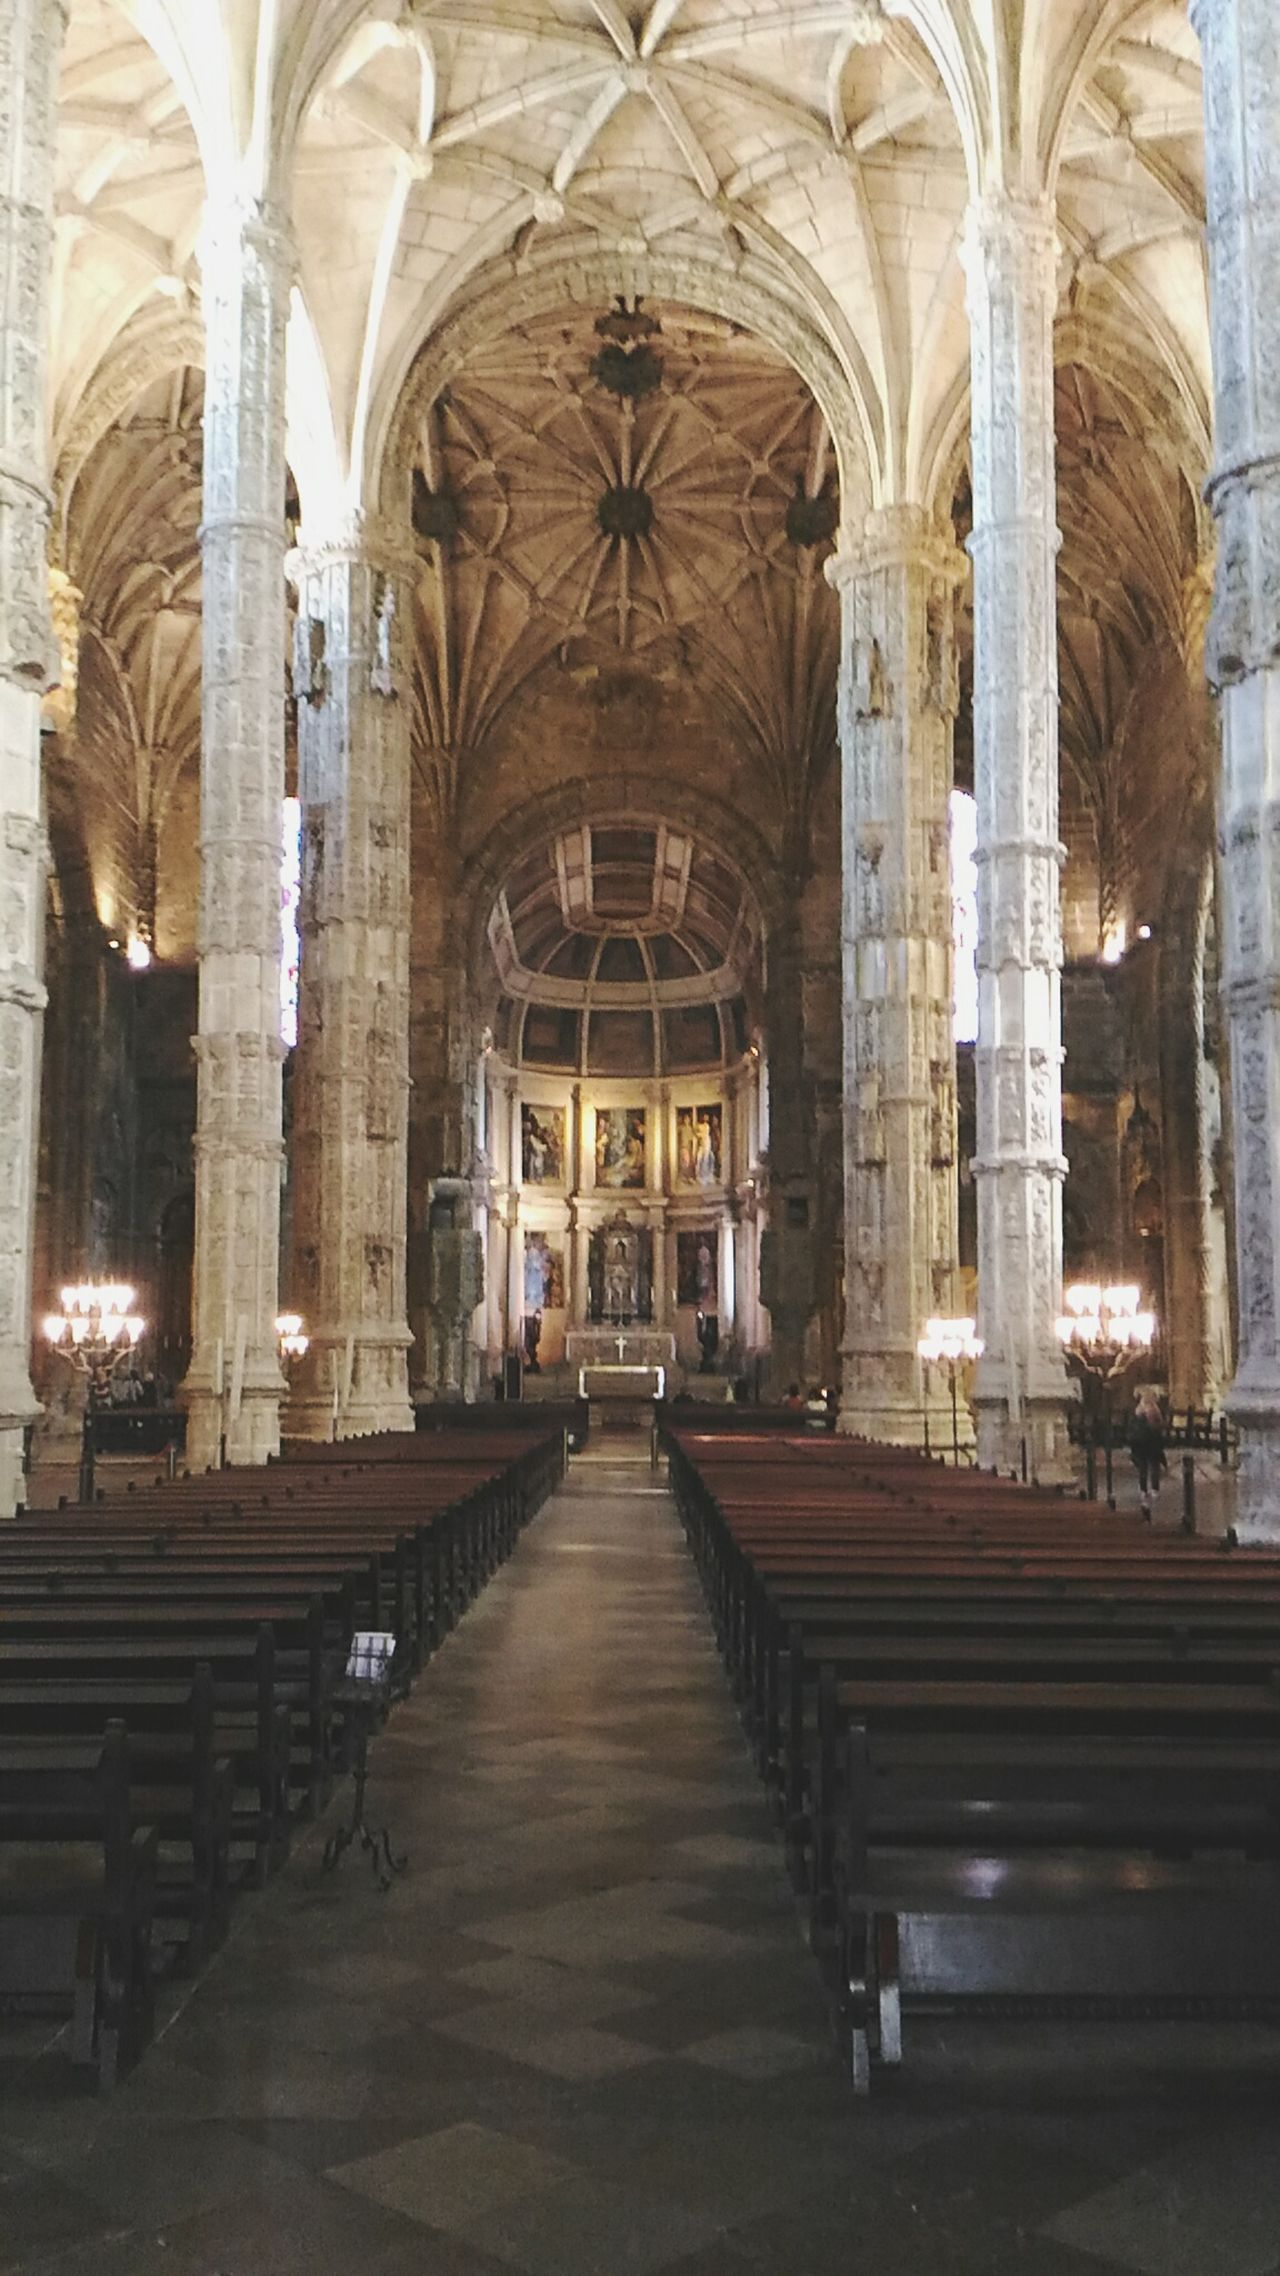 Architecture Indoors  Travel Destinations History Built Structure Arch Place Of Worship Day Pew No People Monastry Mosteiro Dos Jerónimos Lisbon Lisbon, Portugal Architecture People And Places Old Monastery Historical Building Historical Place